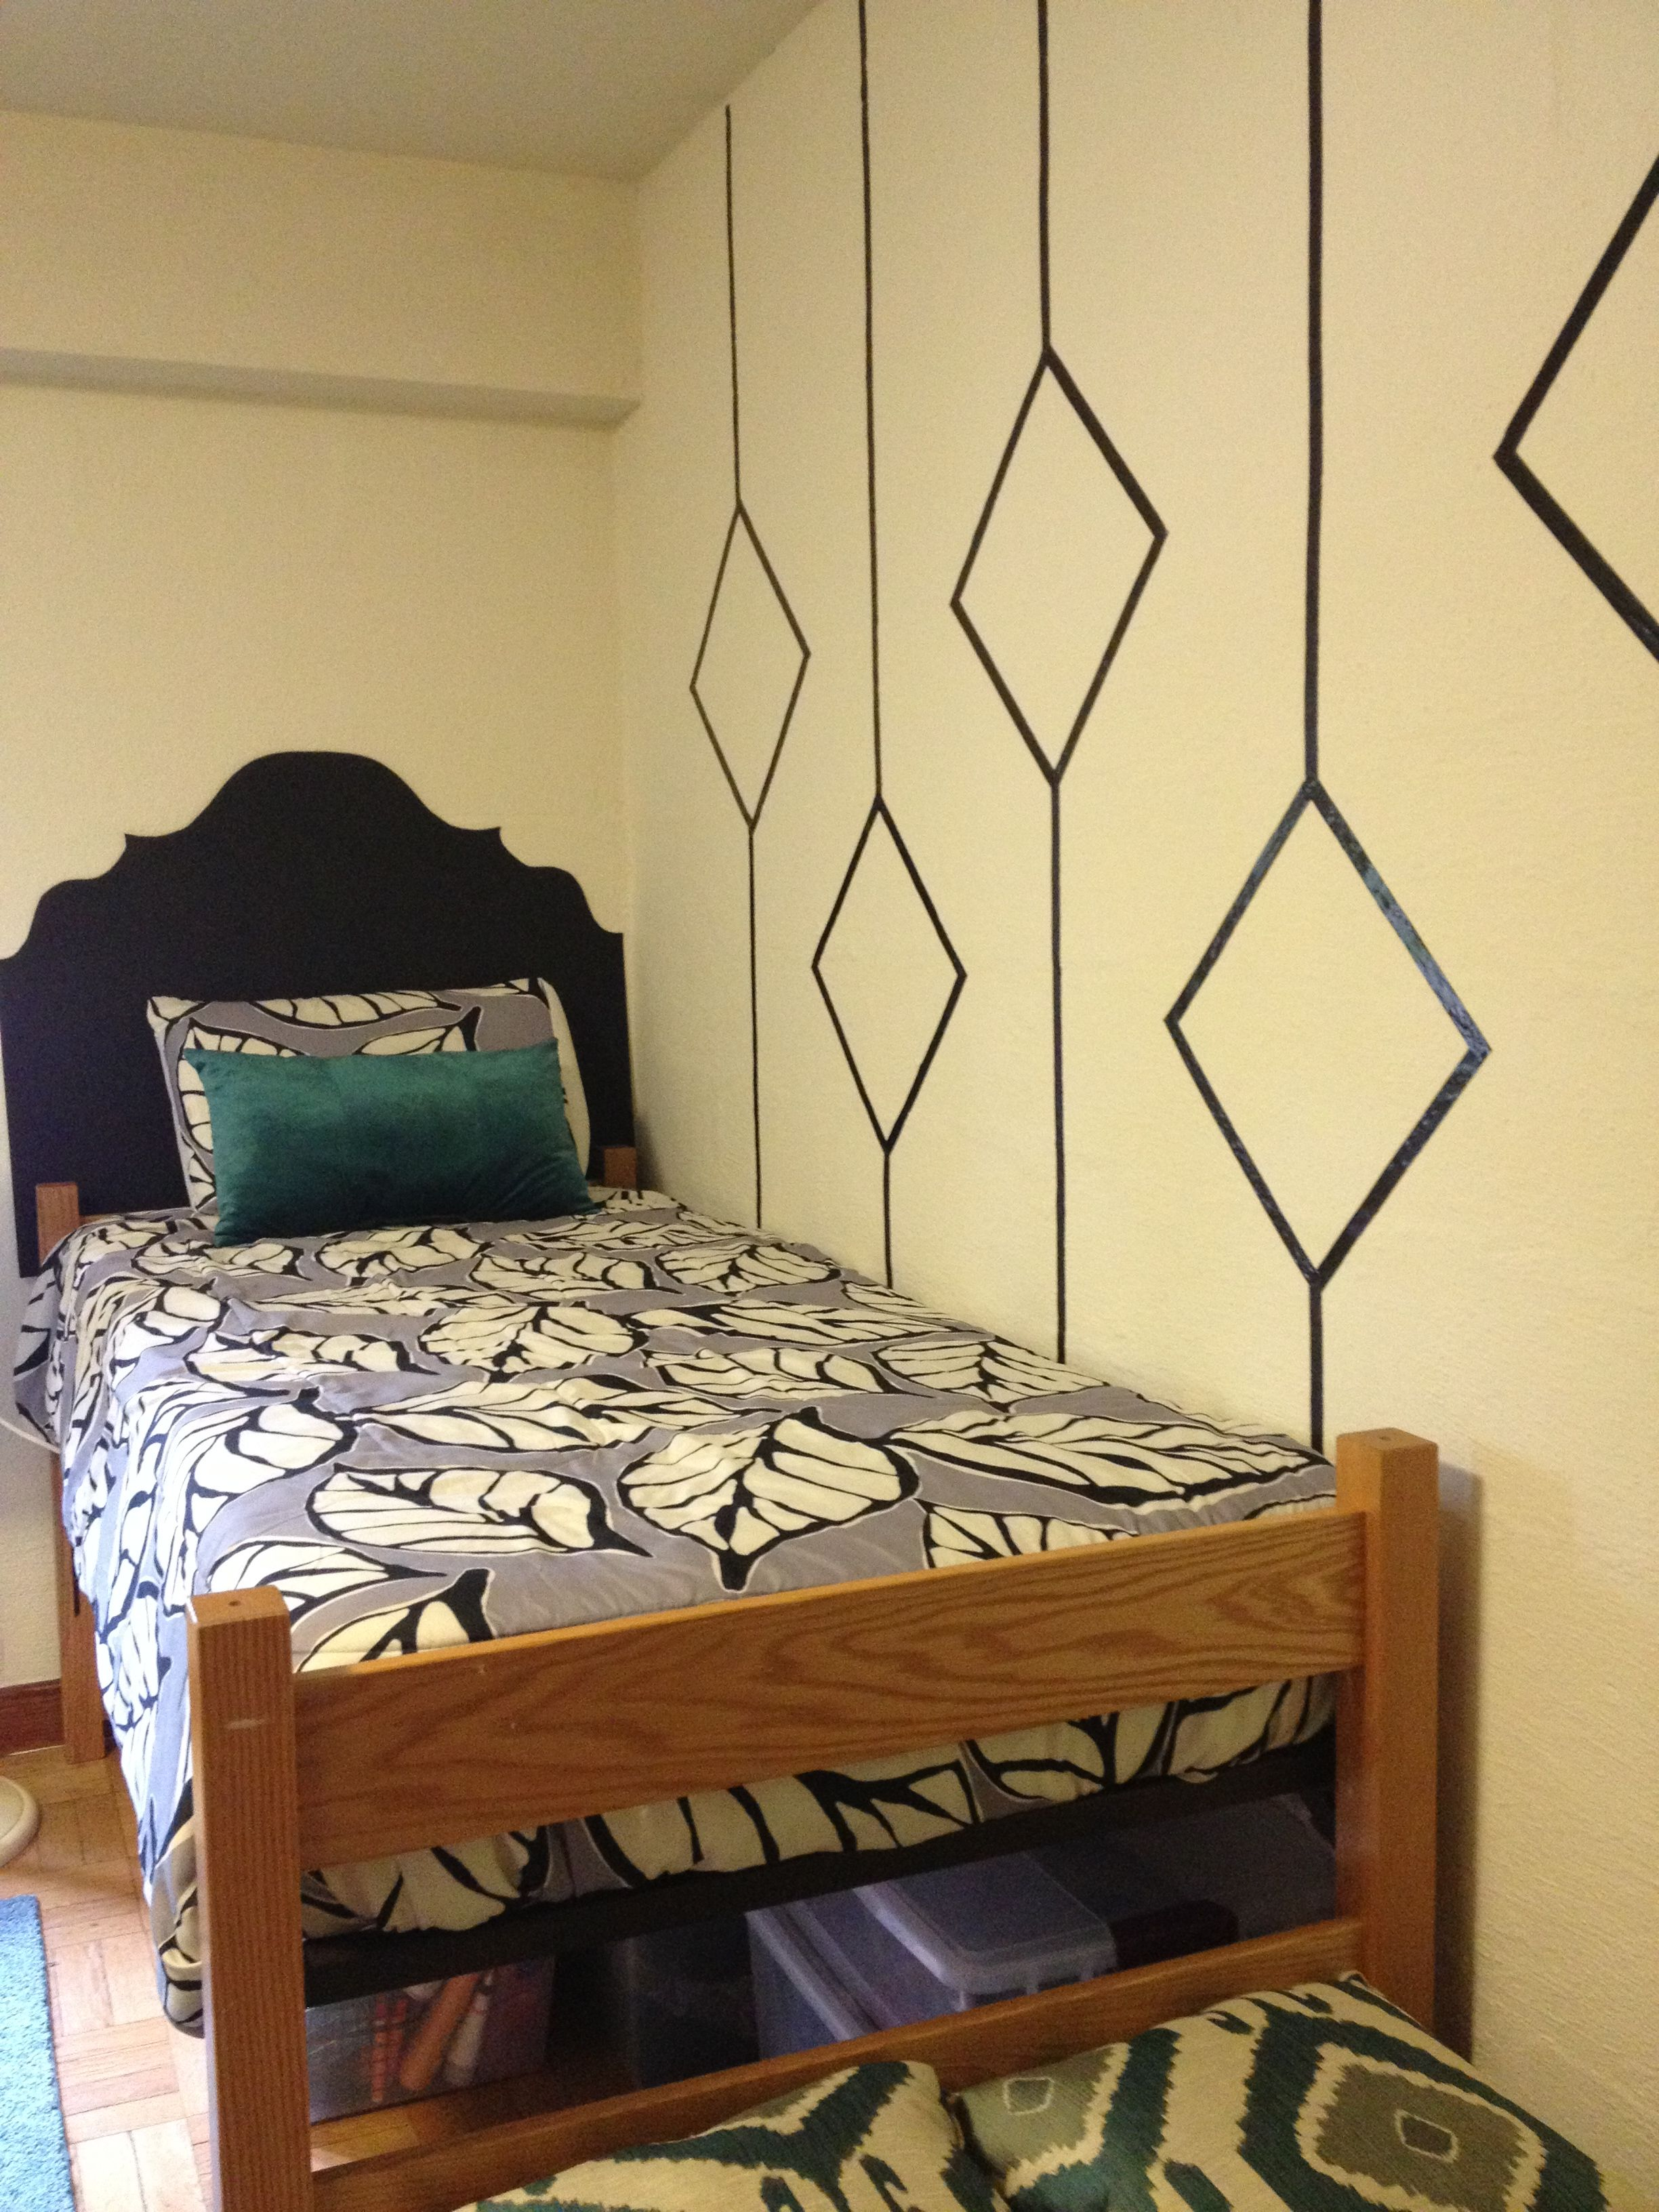 10 Dorm Room Decorating Ideas To Steal | Dorm Wall Decorations .